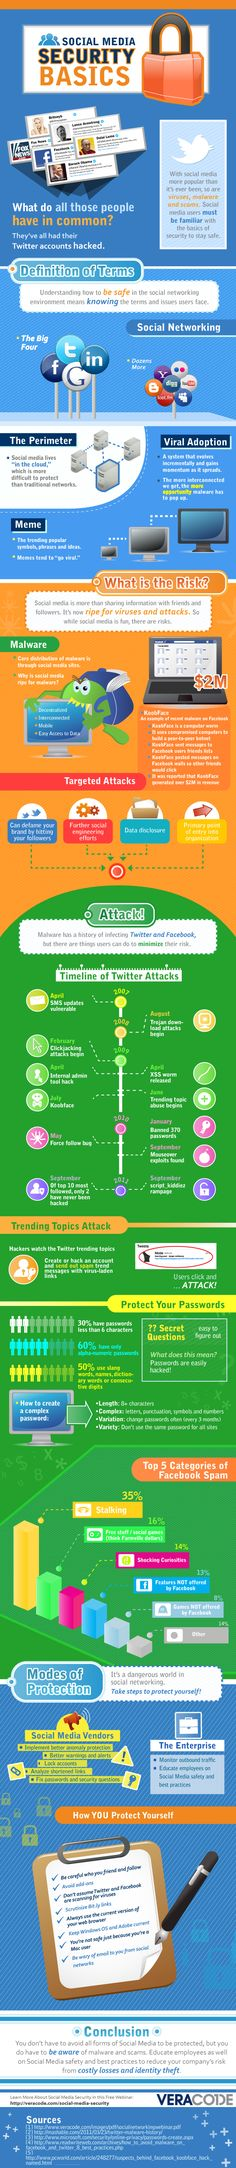 [Infographic] Social Media Security Basics  By David Strom / March 29, 2012 12:00 AM